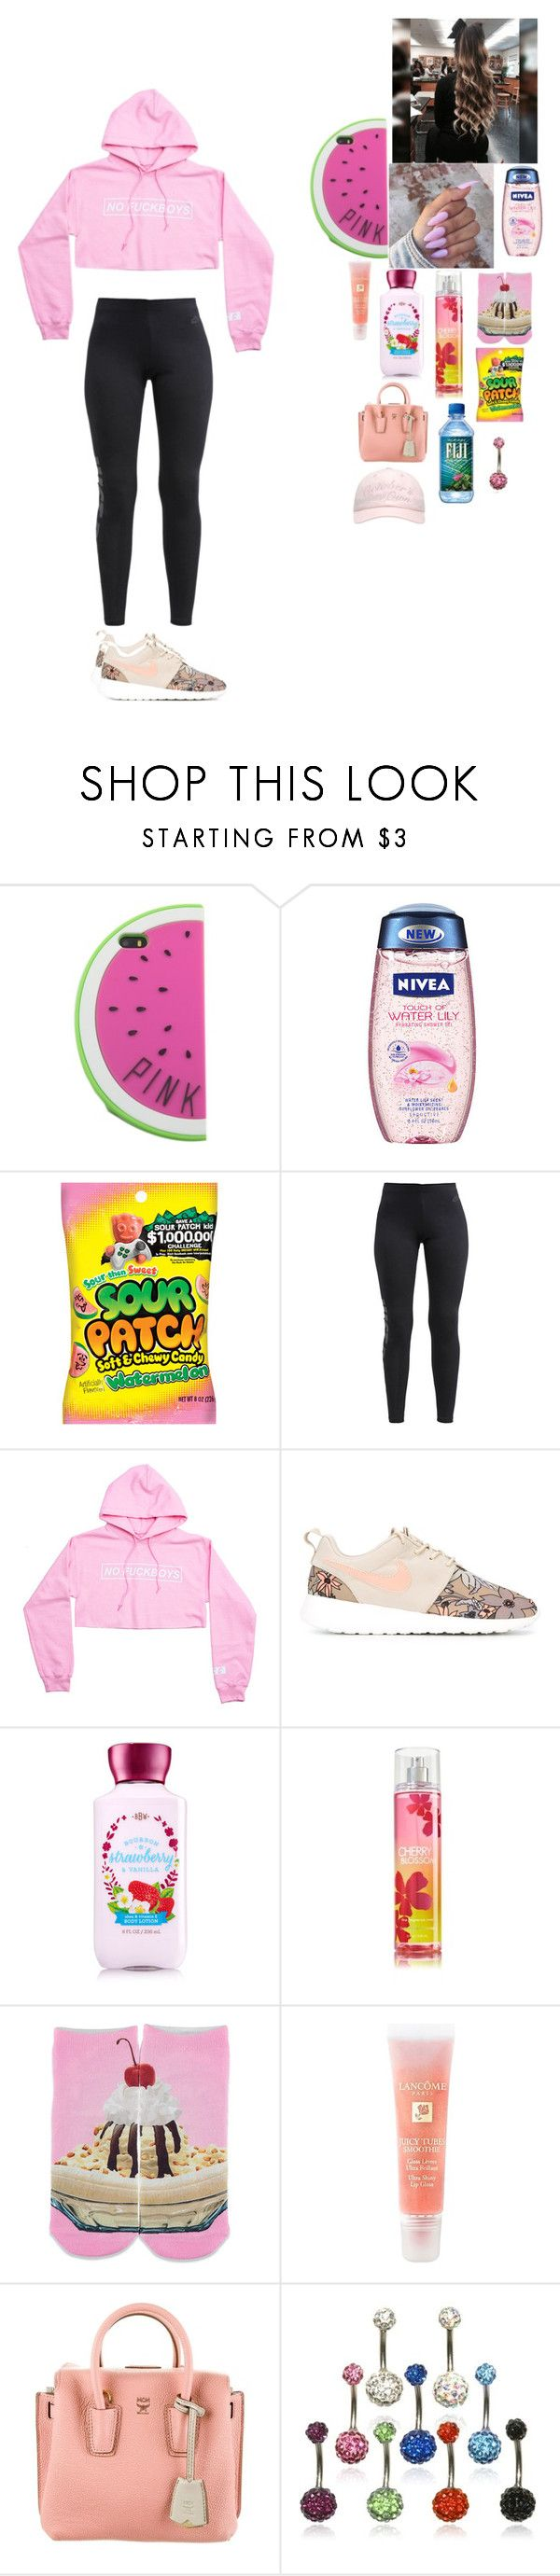 """""""~ self righteous ~"""" by foodislyfe ❤ liked on Polyvore featuring Nivea, NIKE, Forever 21, Lancôme, MCM and October's Very Own"""